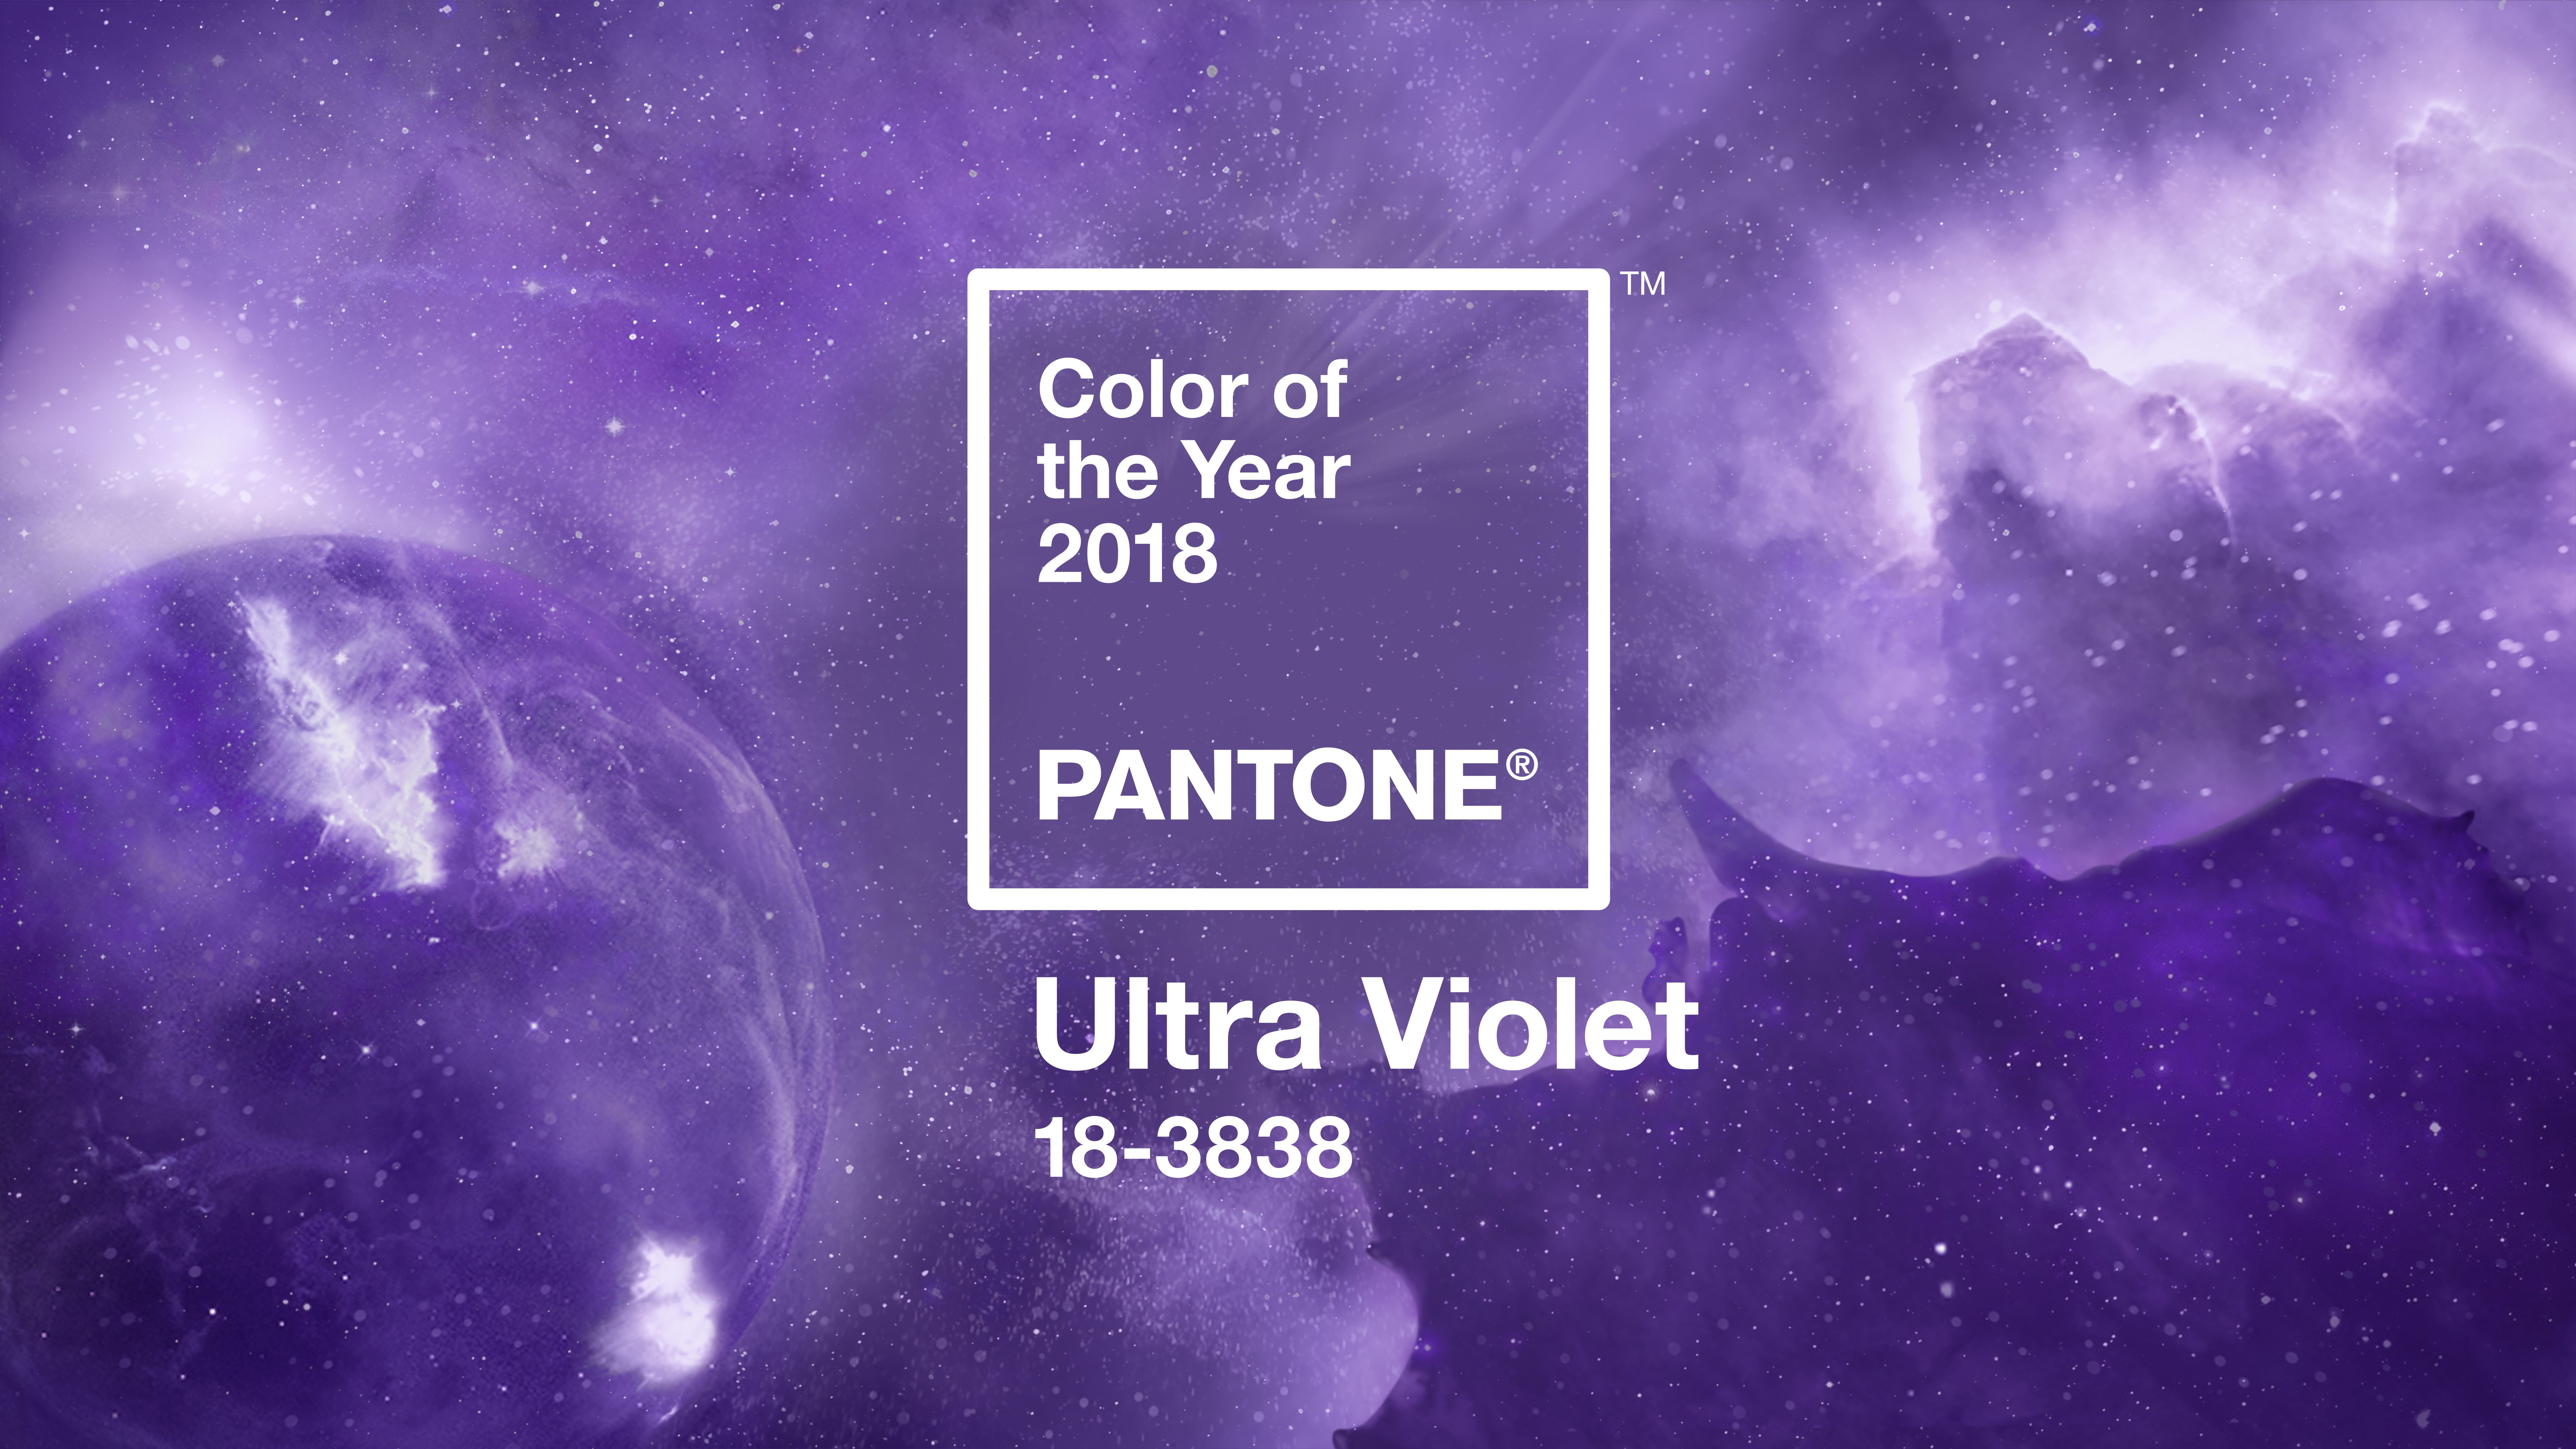 Lighting the way for the year ahead, Pantone announces PANTONE 18-3838 Ultra Violet as the Color of the Year 2018! A dramatically provocative and thoughtful purple shade, Ultra Violet communicates originality, ingenuity and visionary thinking that points us to the future.  Discover the meaning behind the newest Color of the Year.